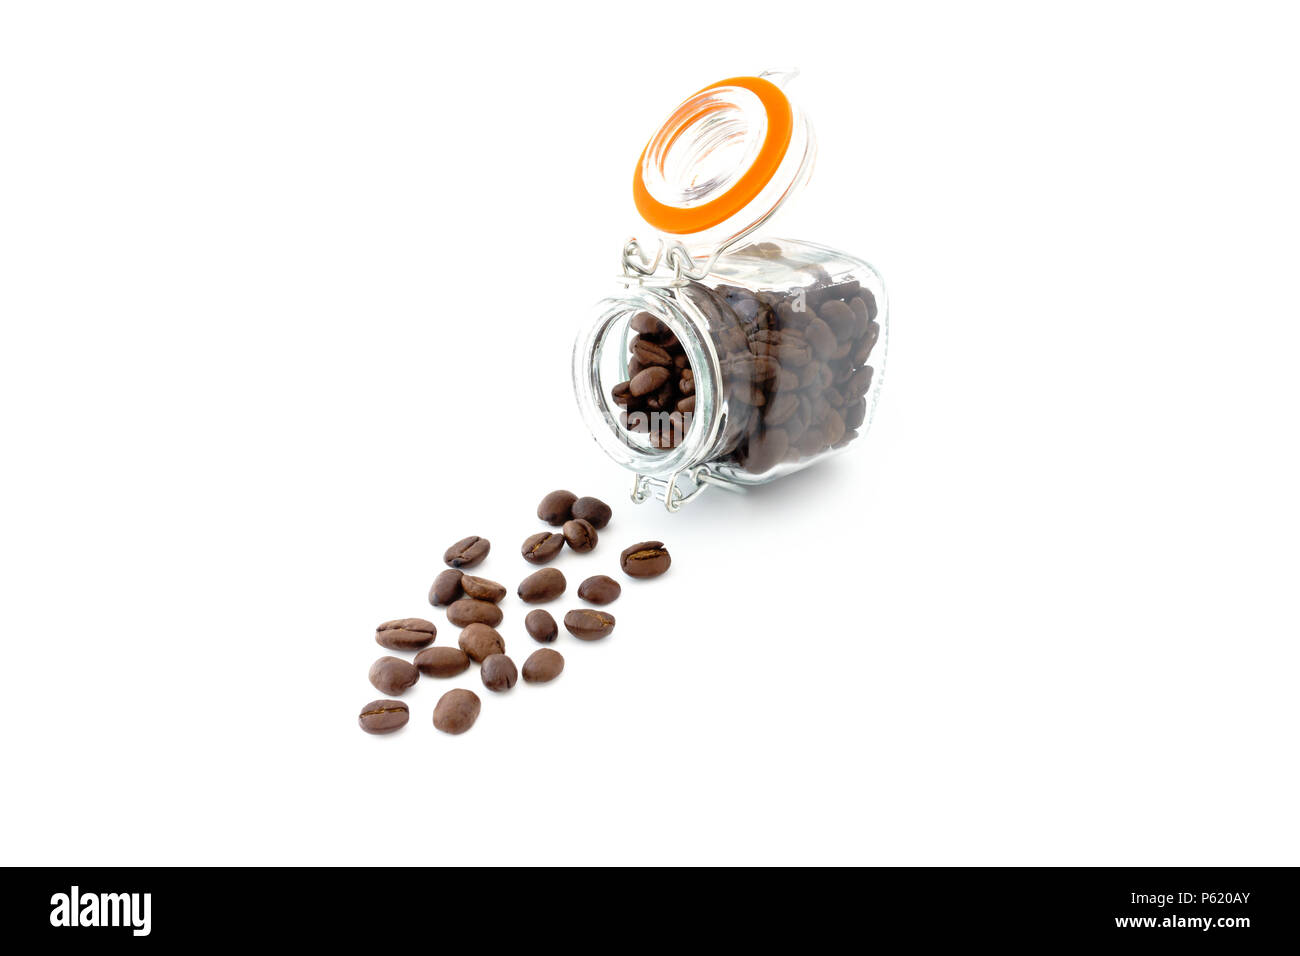 Square mini preserving jar filled with roasted coffee beans and coffee beans scattered on white background. - Stock Image